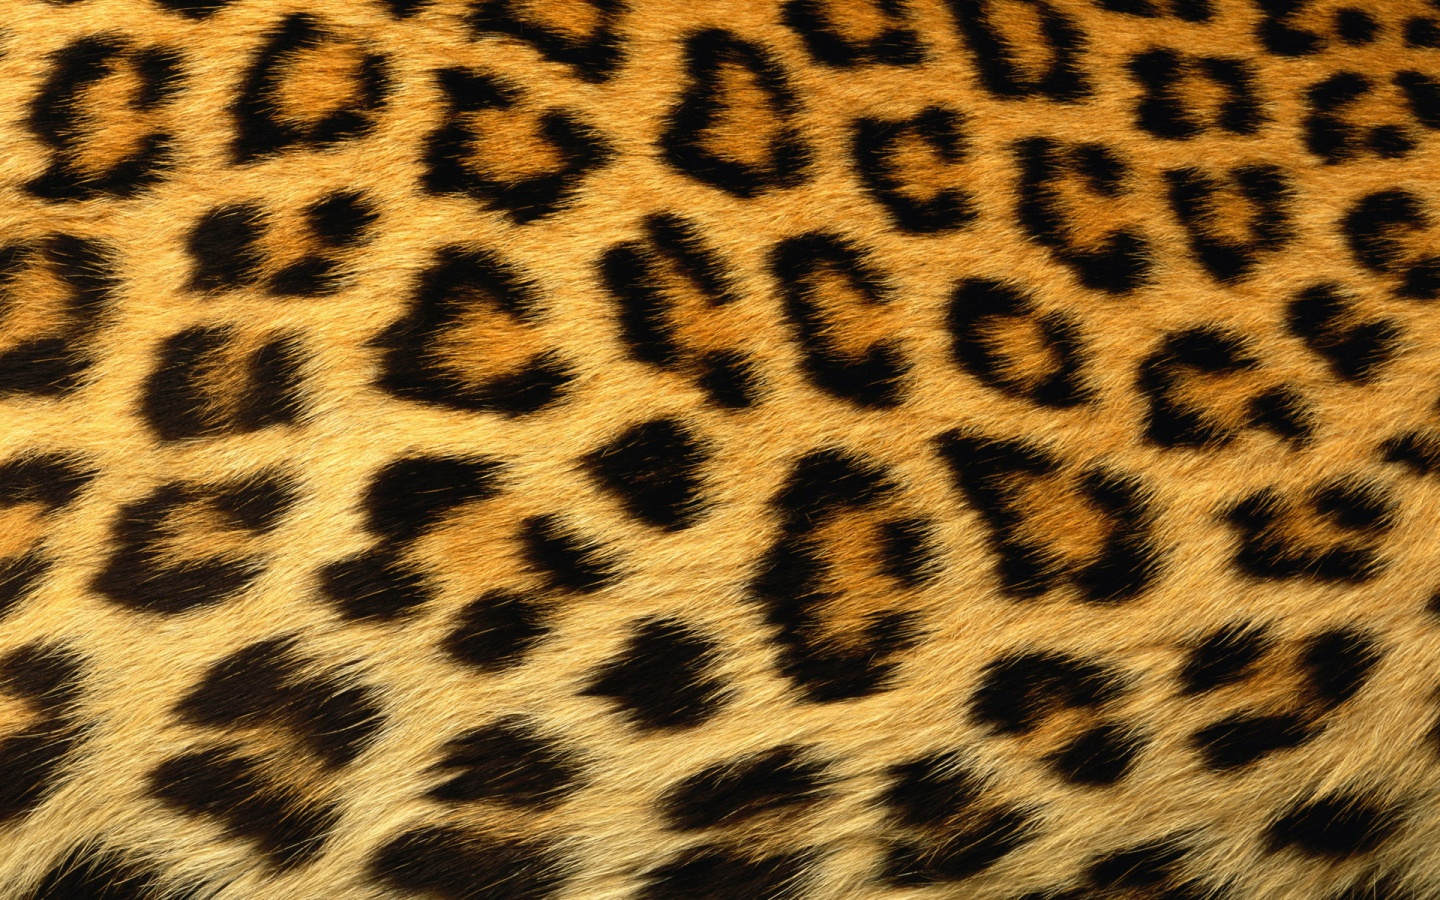 leopard print background x free images at